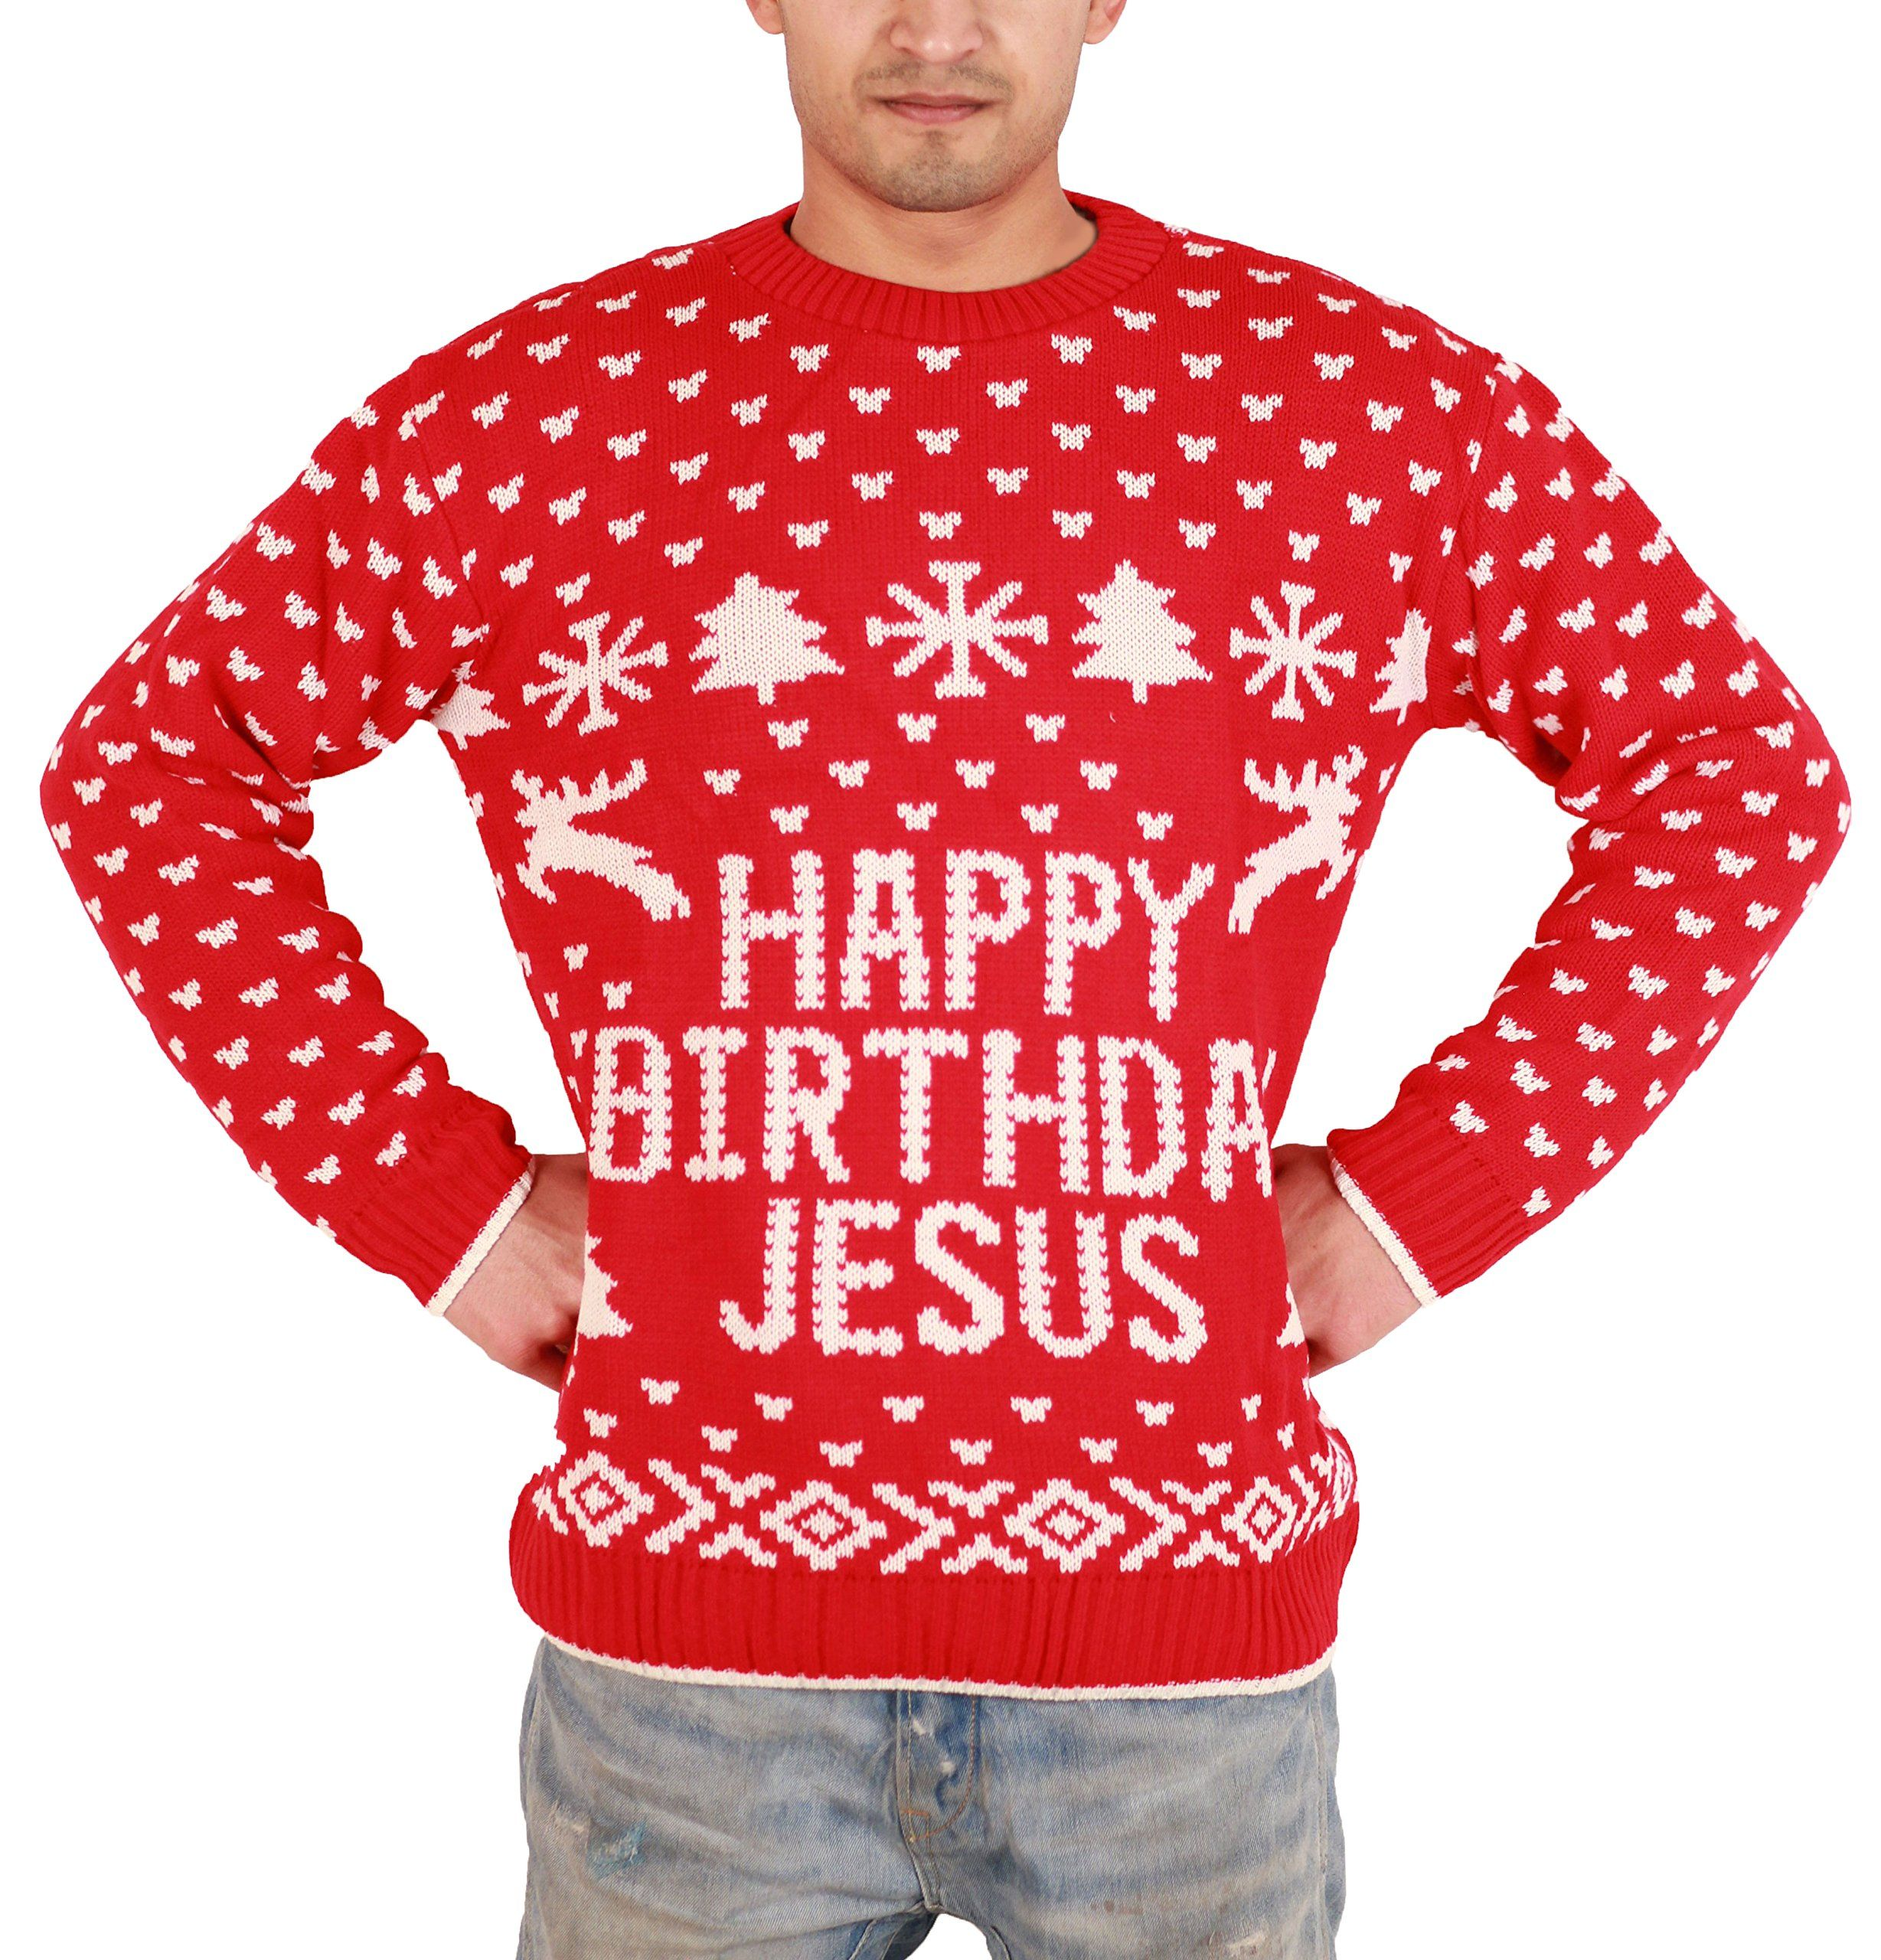 Happy Birthday Jesus Ugly Christmas Sweater /Knitted Jumper | The ...